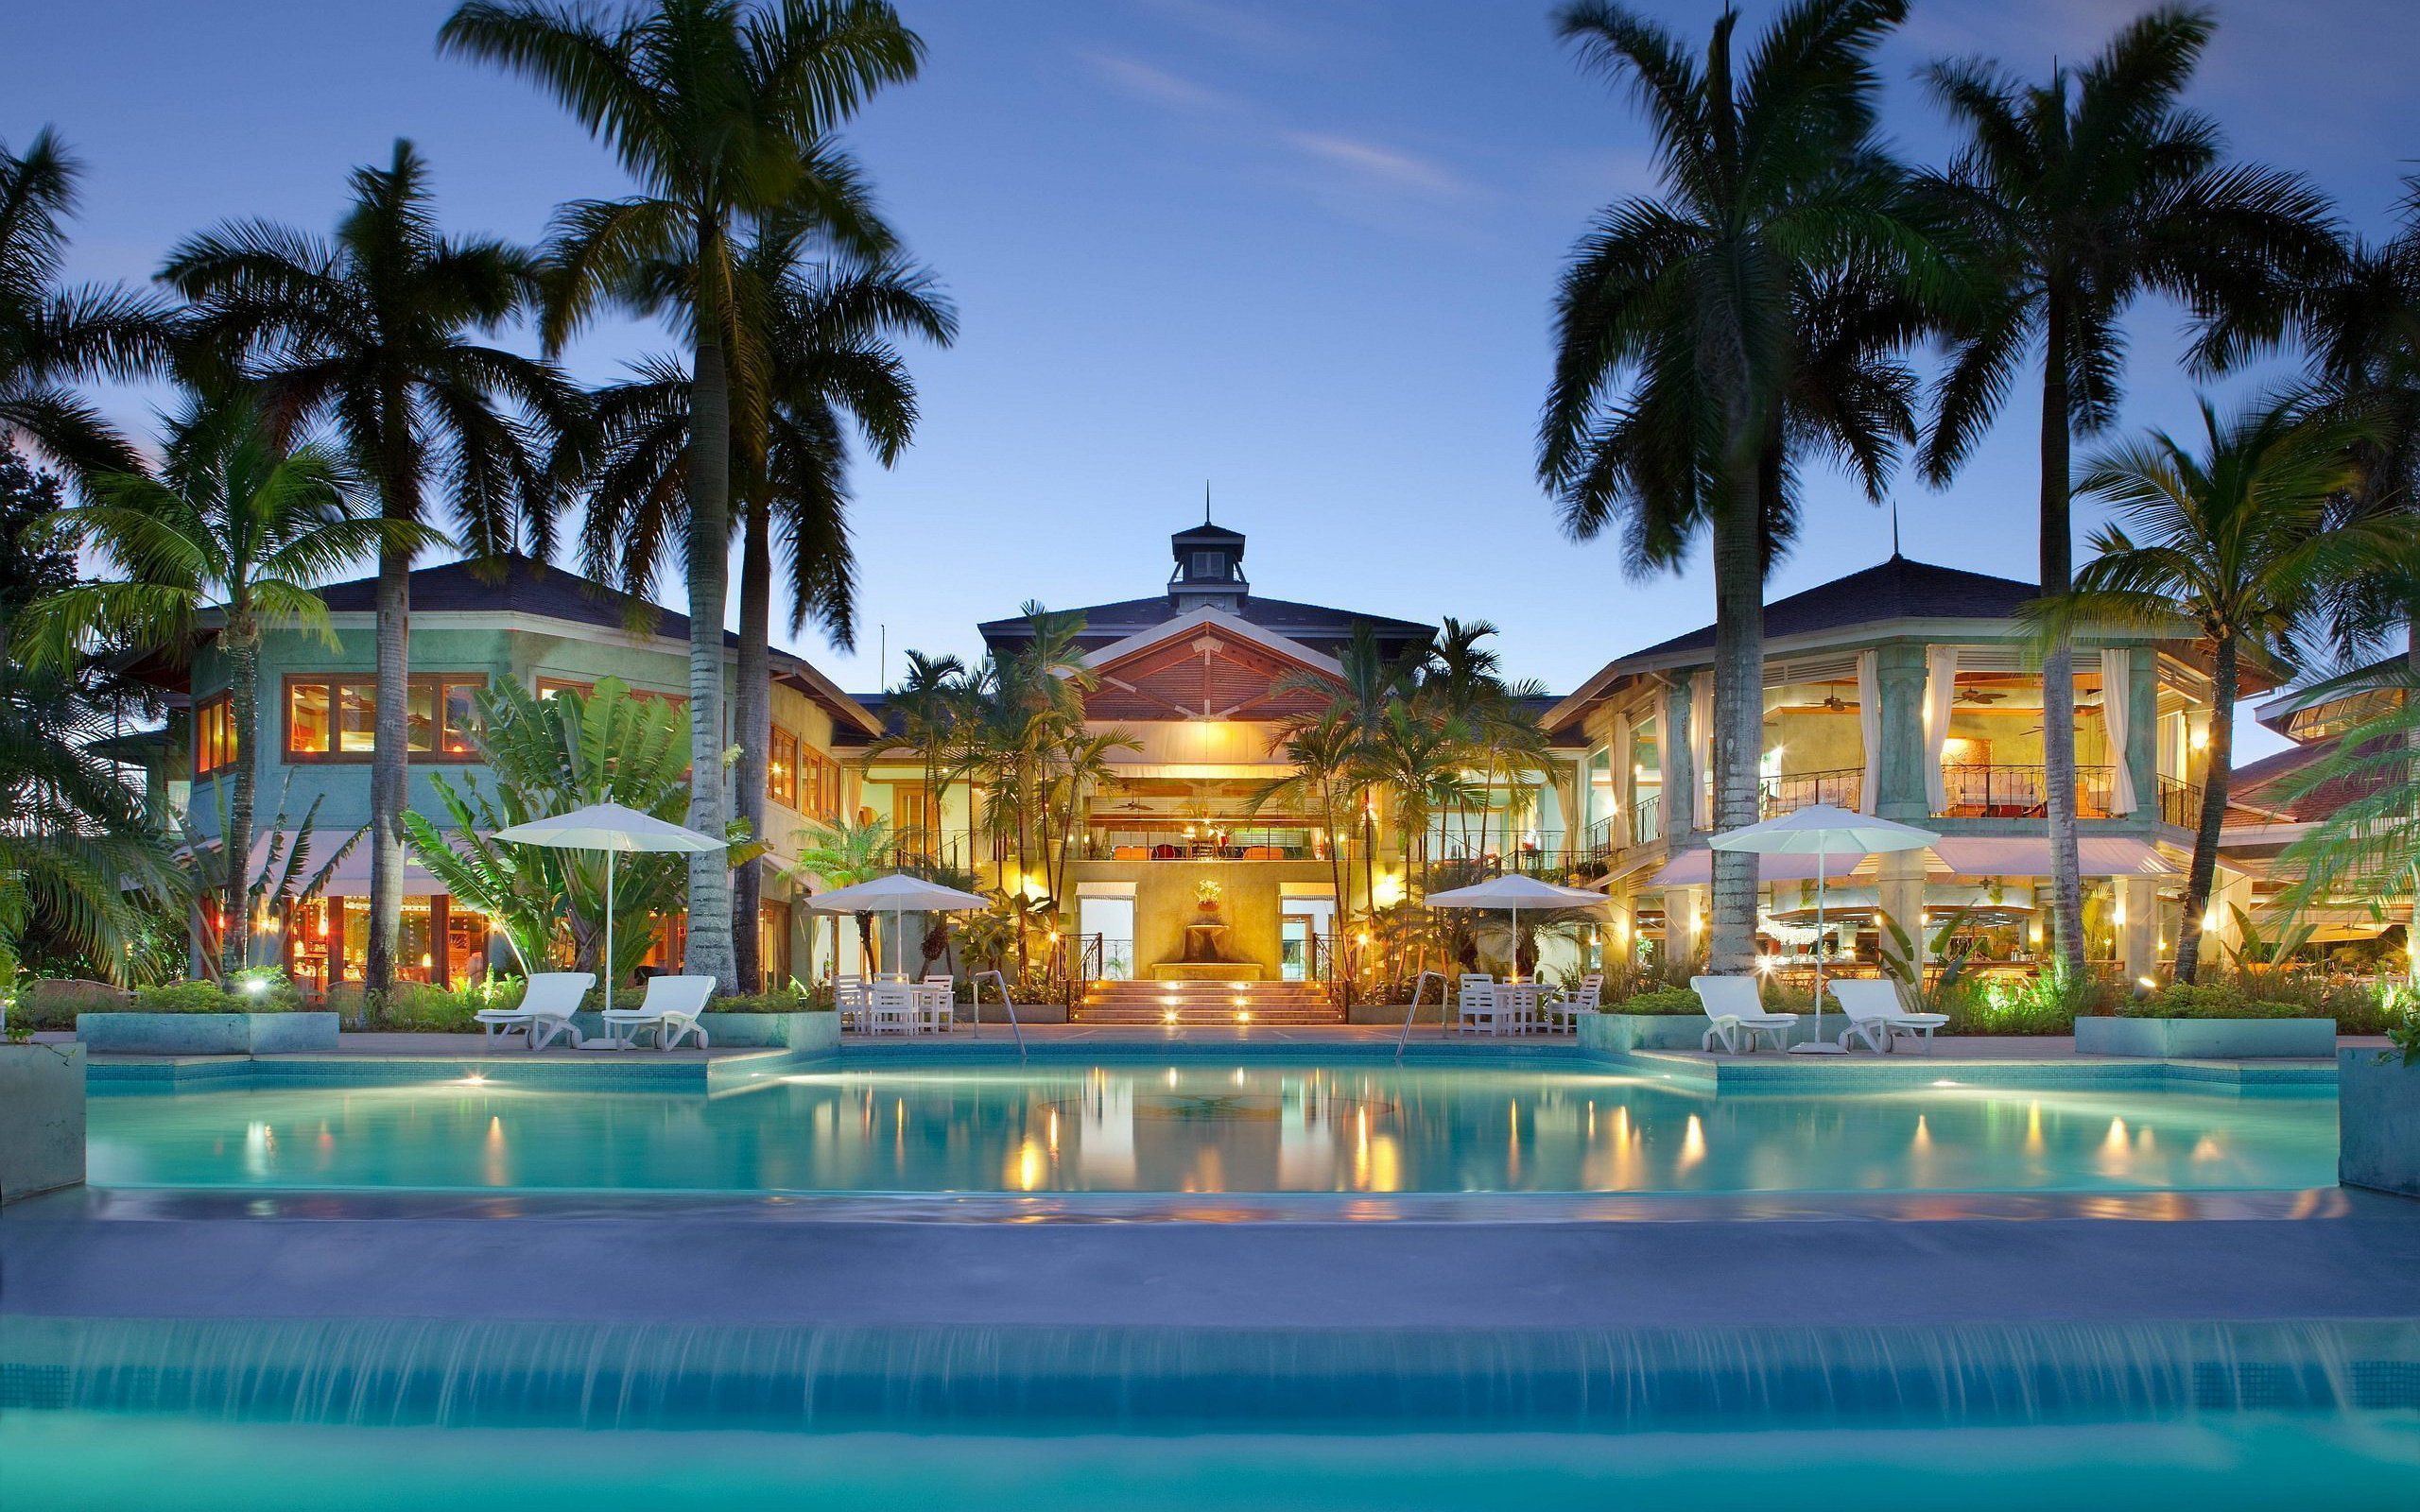 The Best Design Of Big Mansion With Pool For Your Modern House Decoration Idea 15 Heavenly Beautiful Lux Couples Resorts Couples Negril Jamaica Couples Negril